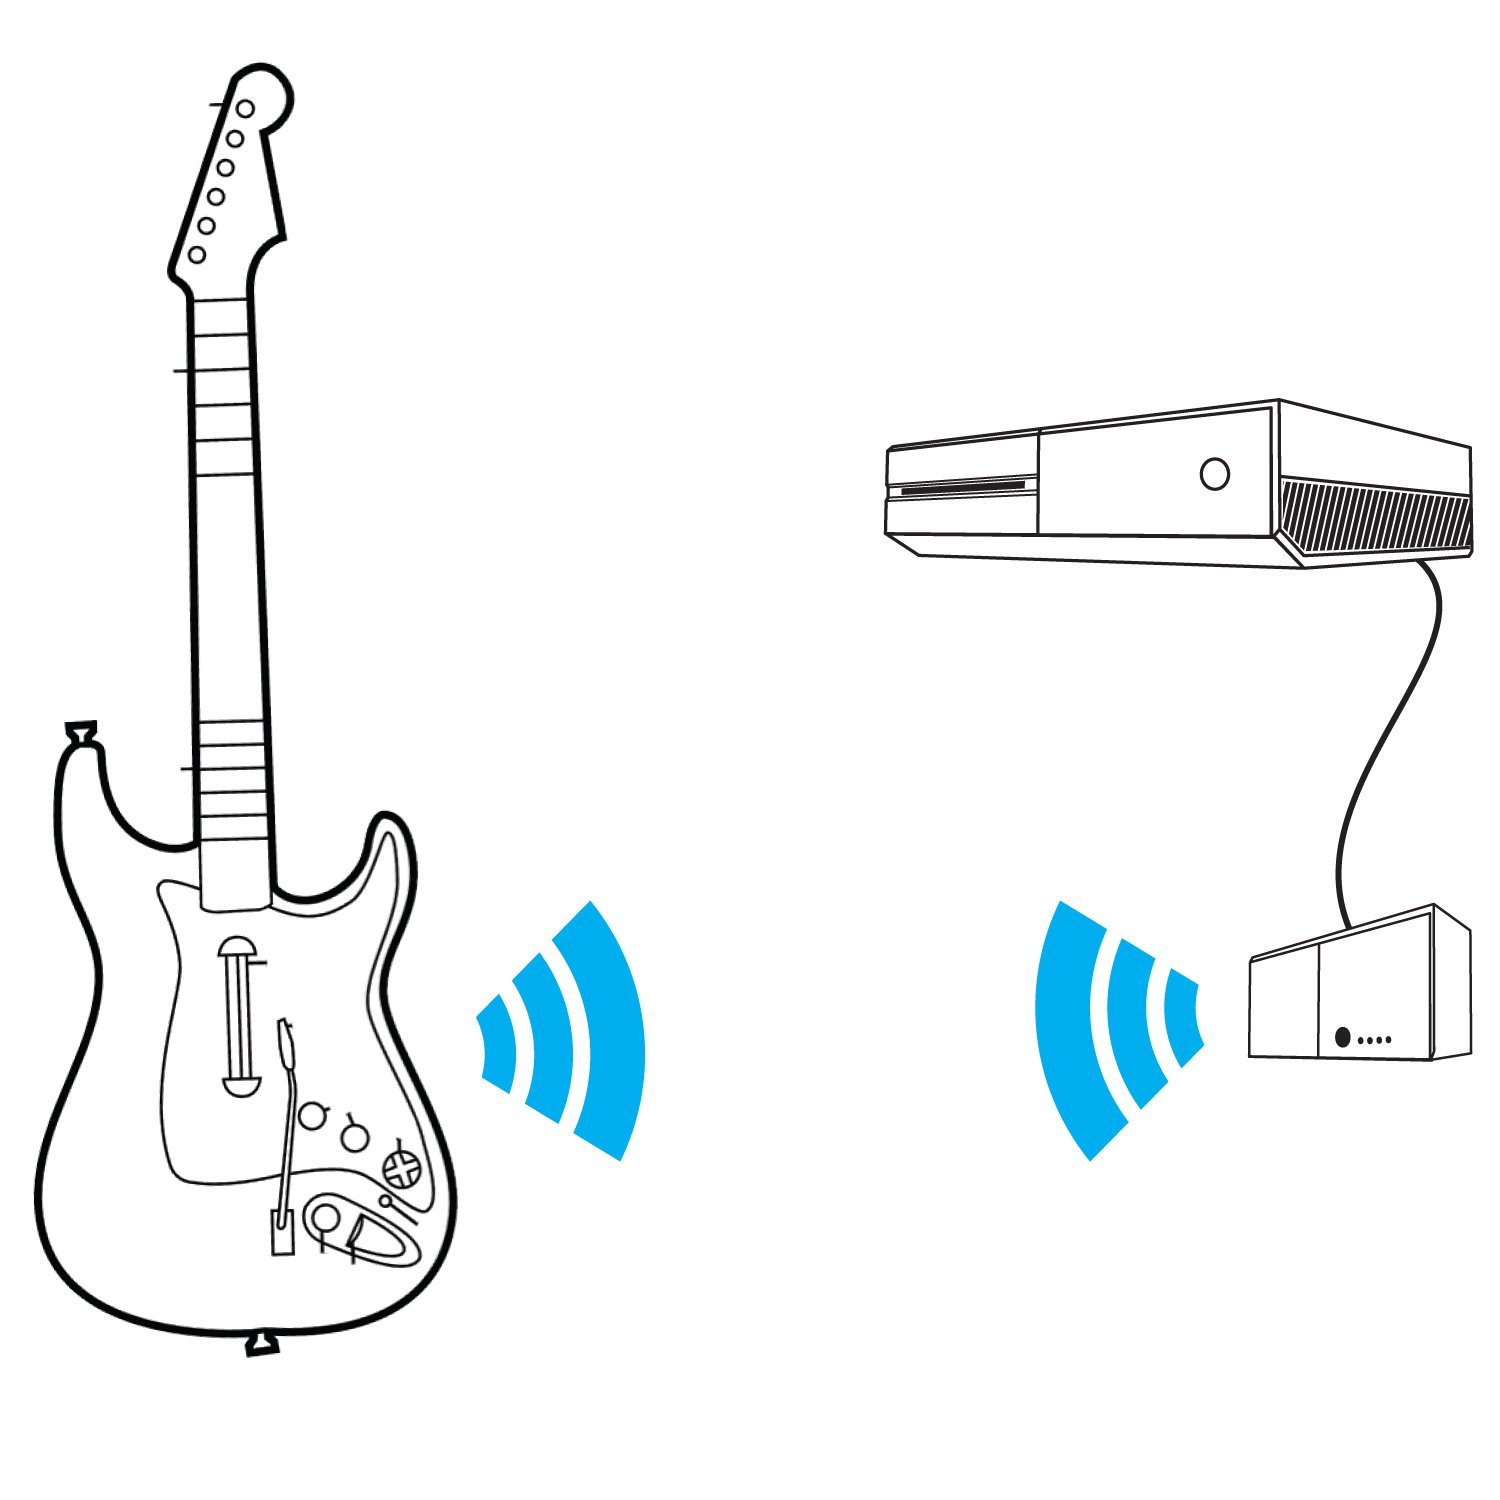 Xbox Guitar Controller Usb Wire Diagram